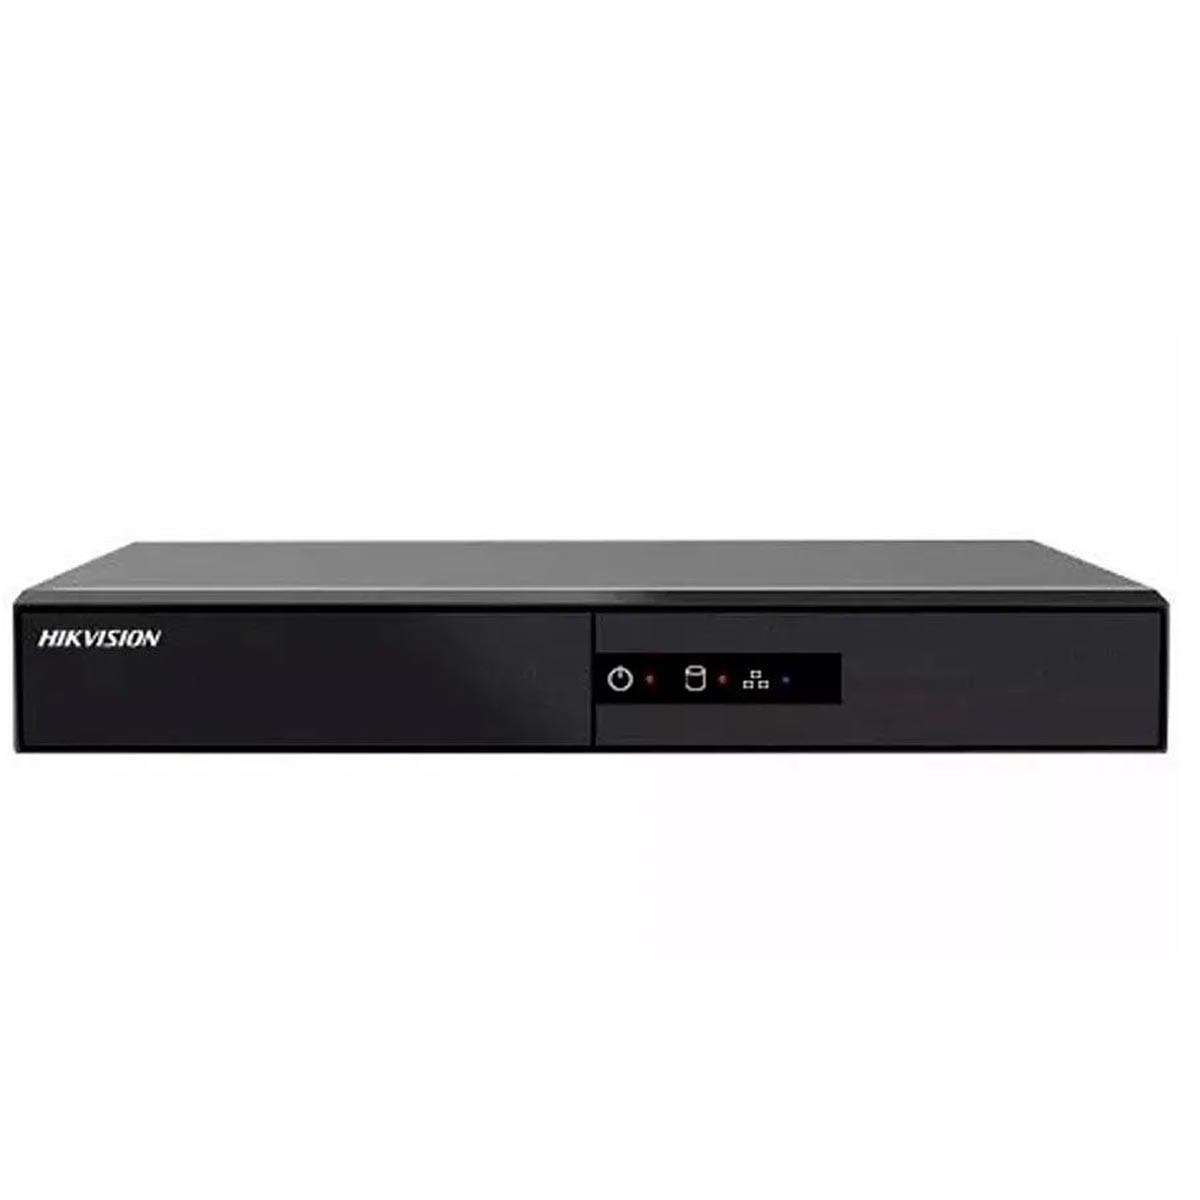 DVR STAND ALONE  HIKVISION  1MP 04 CANAIS COM HD 1 TB DS-7204HGHI-F1